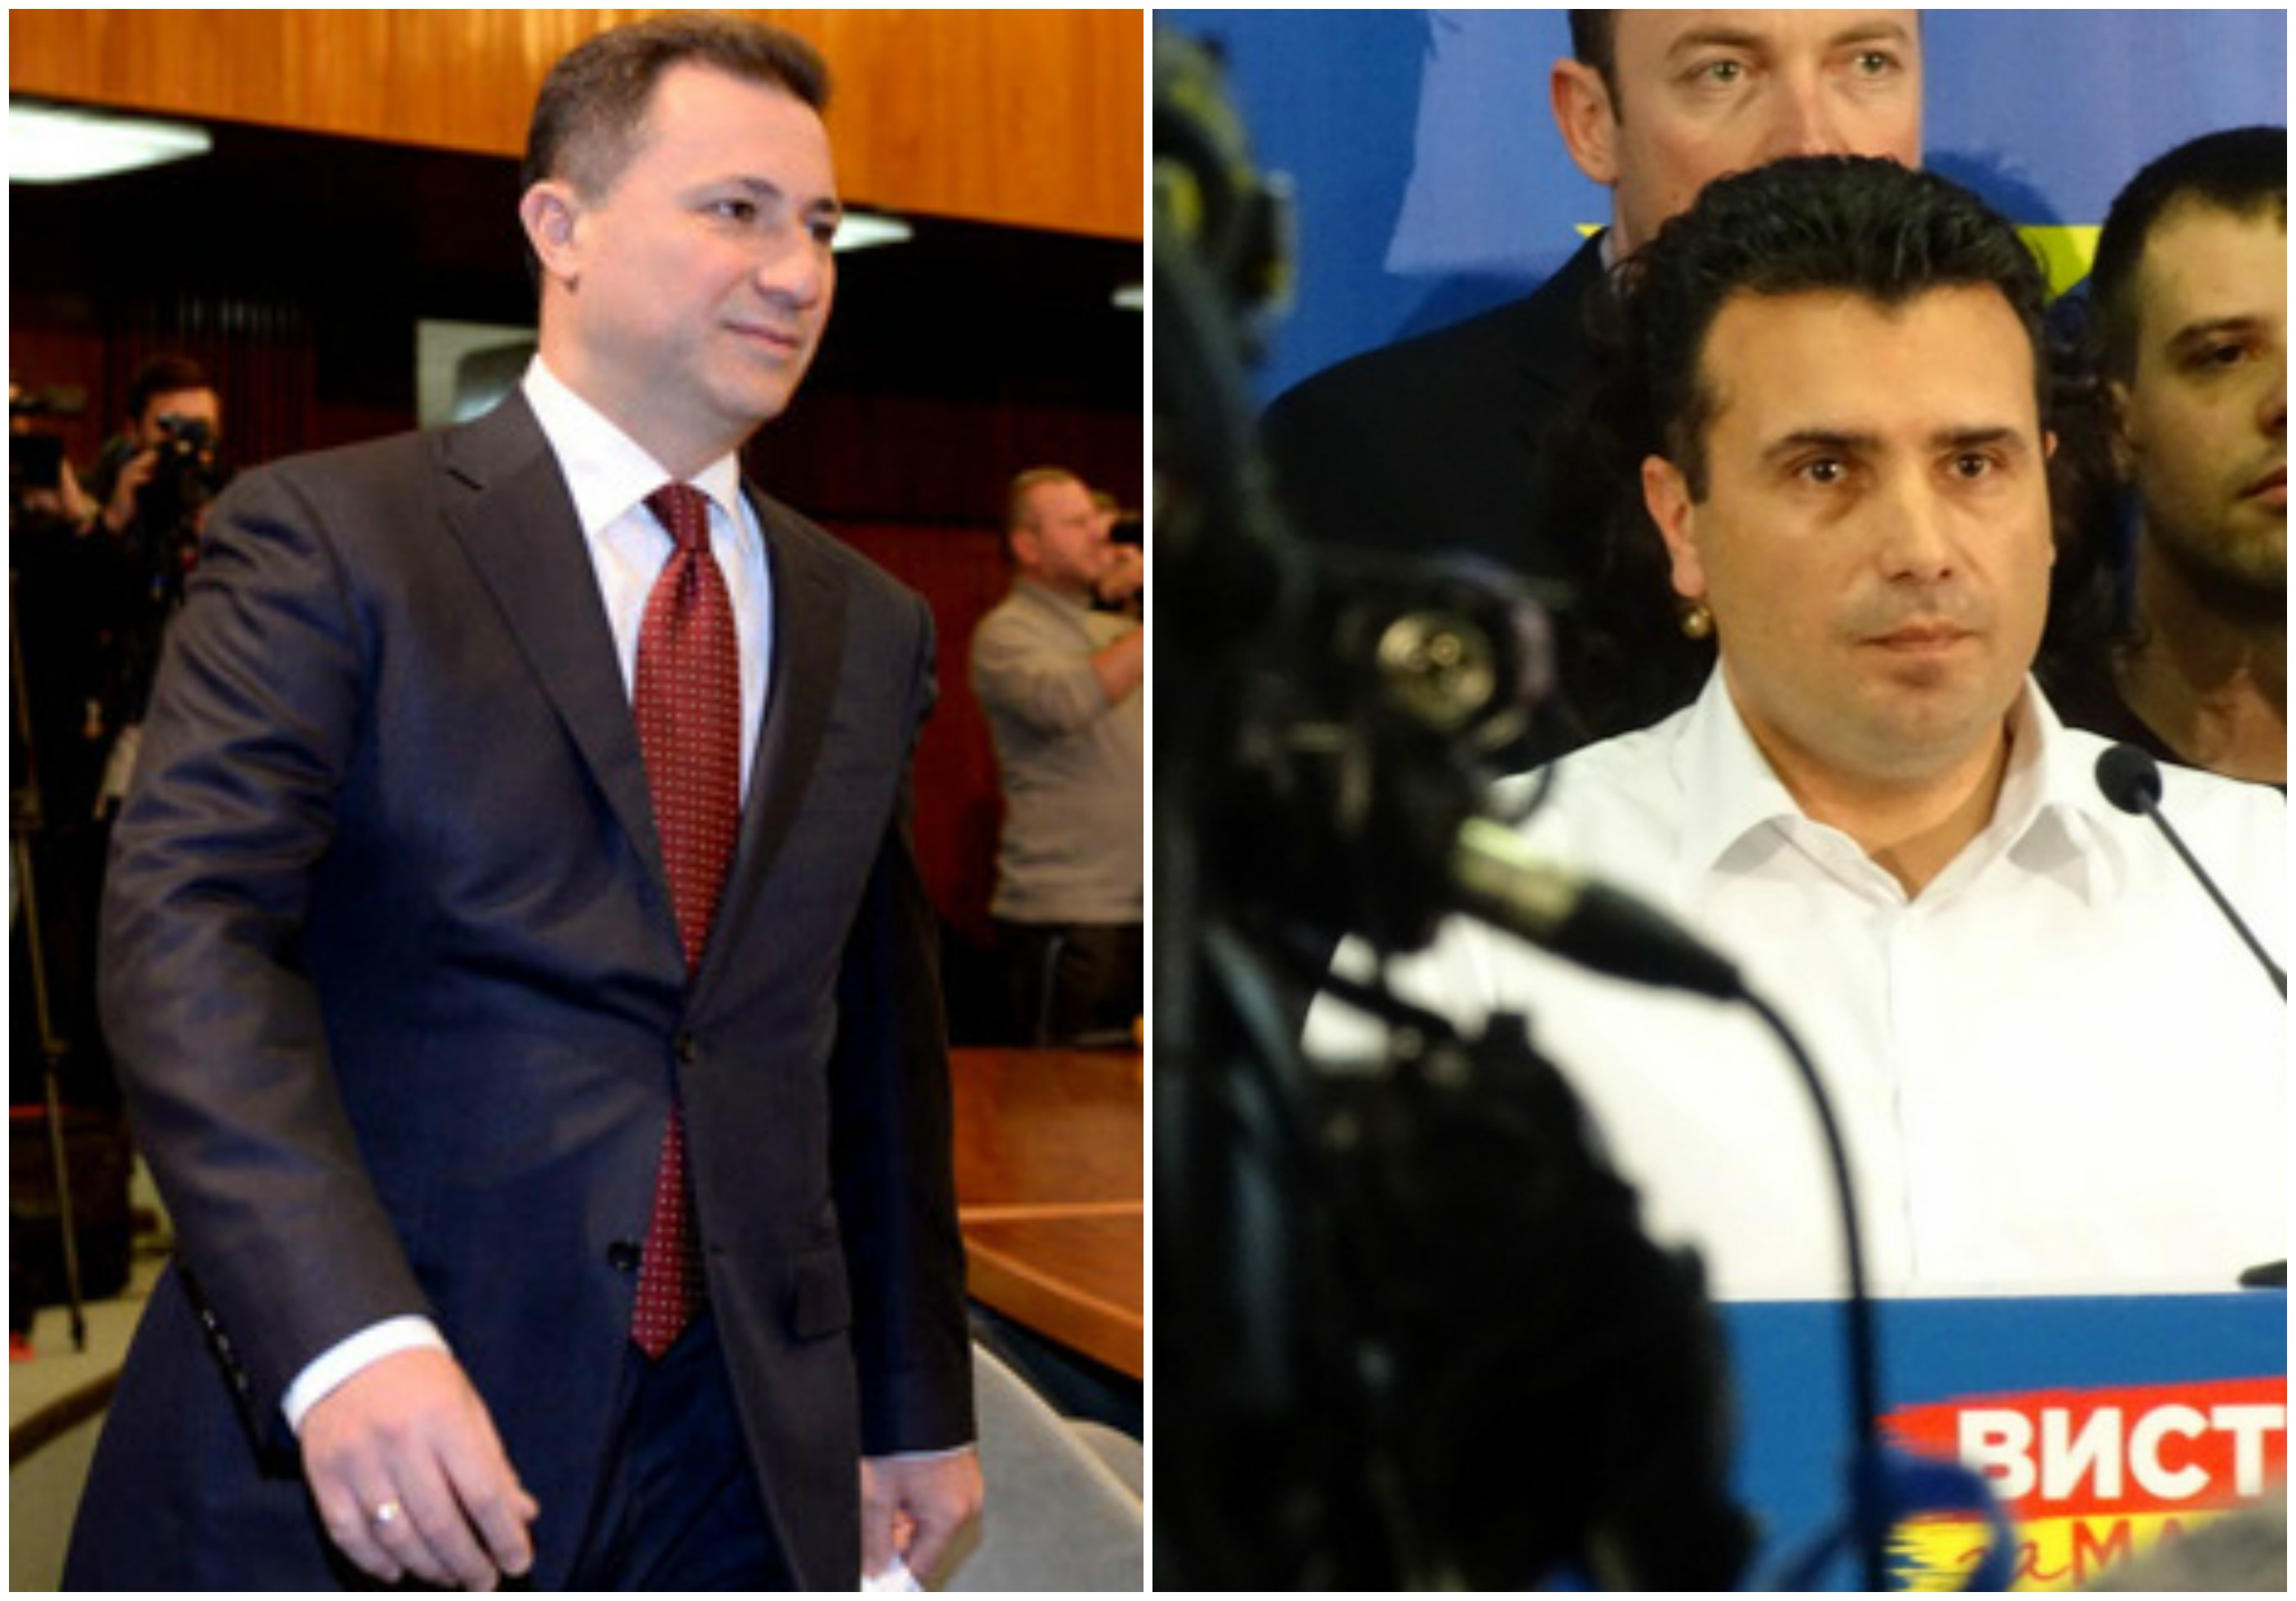 Gruevski complains to foreign diplomats about the campaign, Zaev pledges for free elections